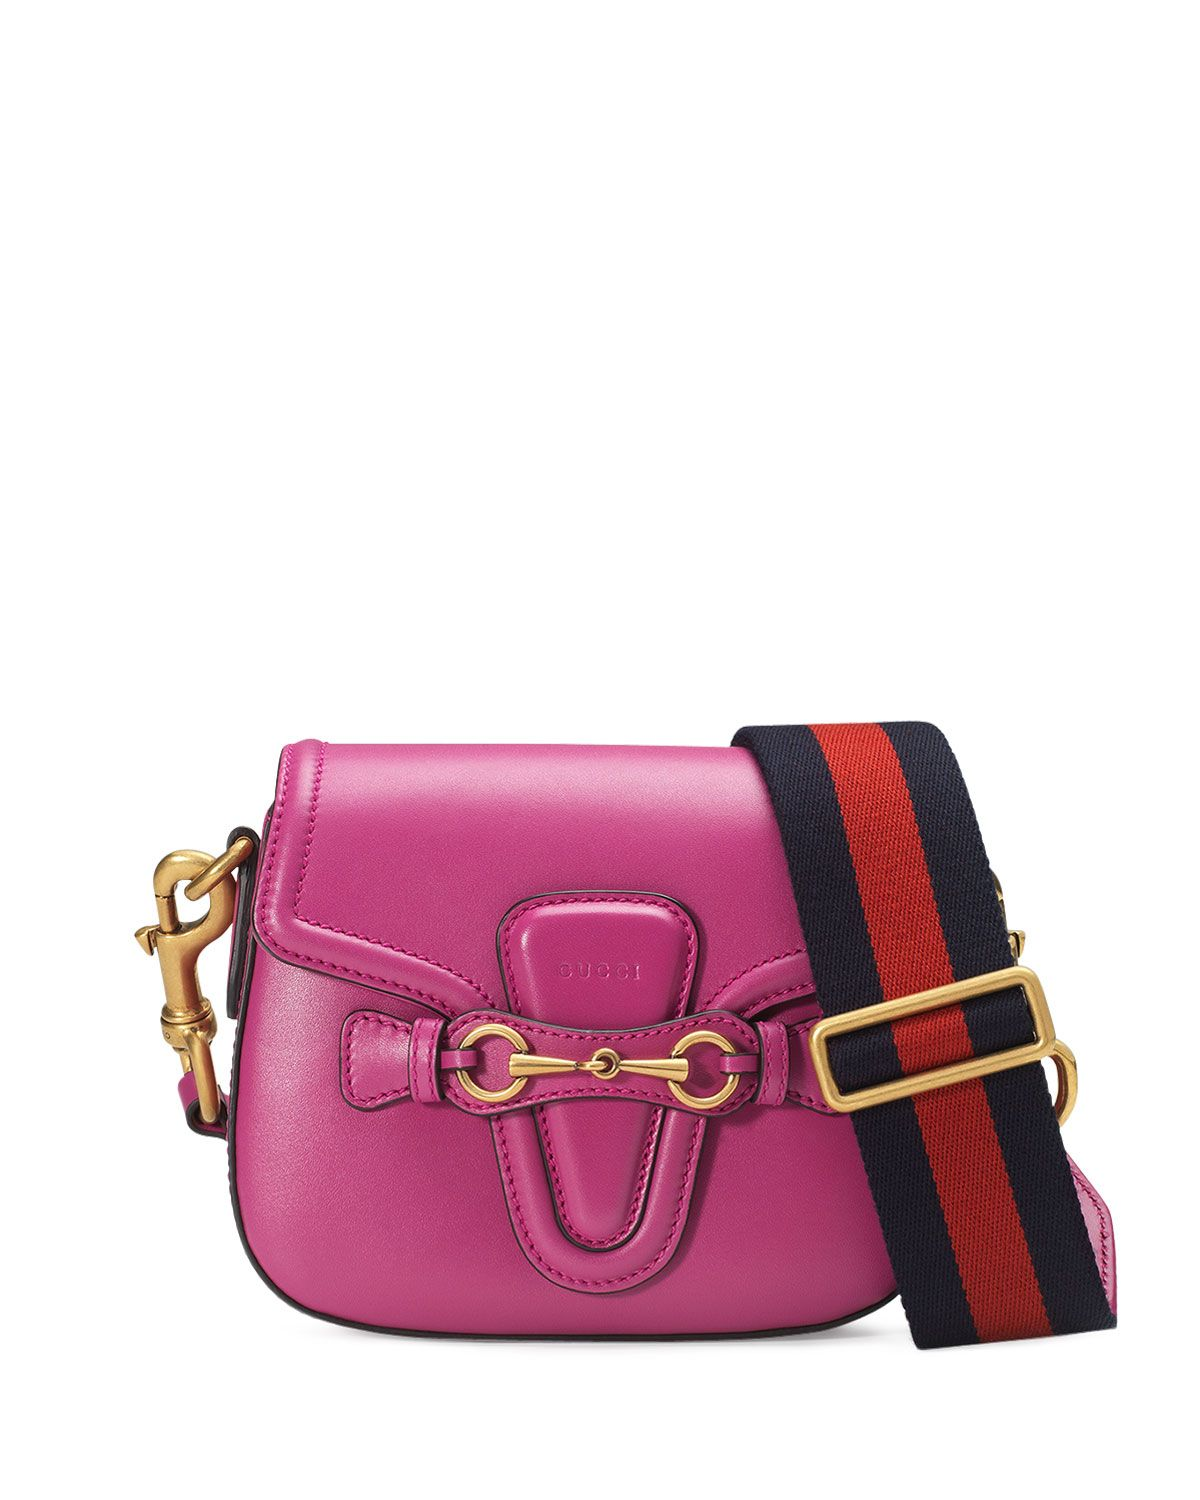 9716e3dac5 Lady Web Small Leather Crossbody Bag